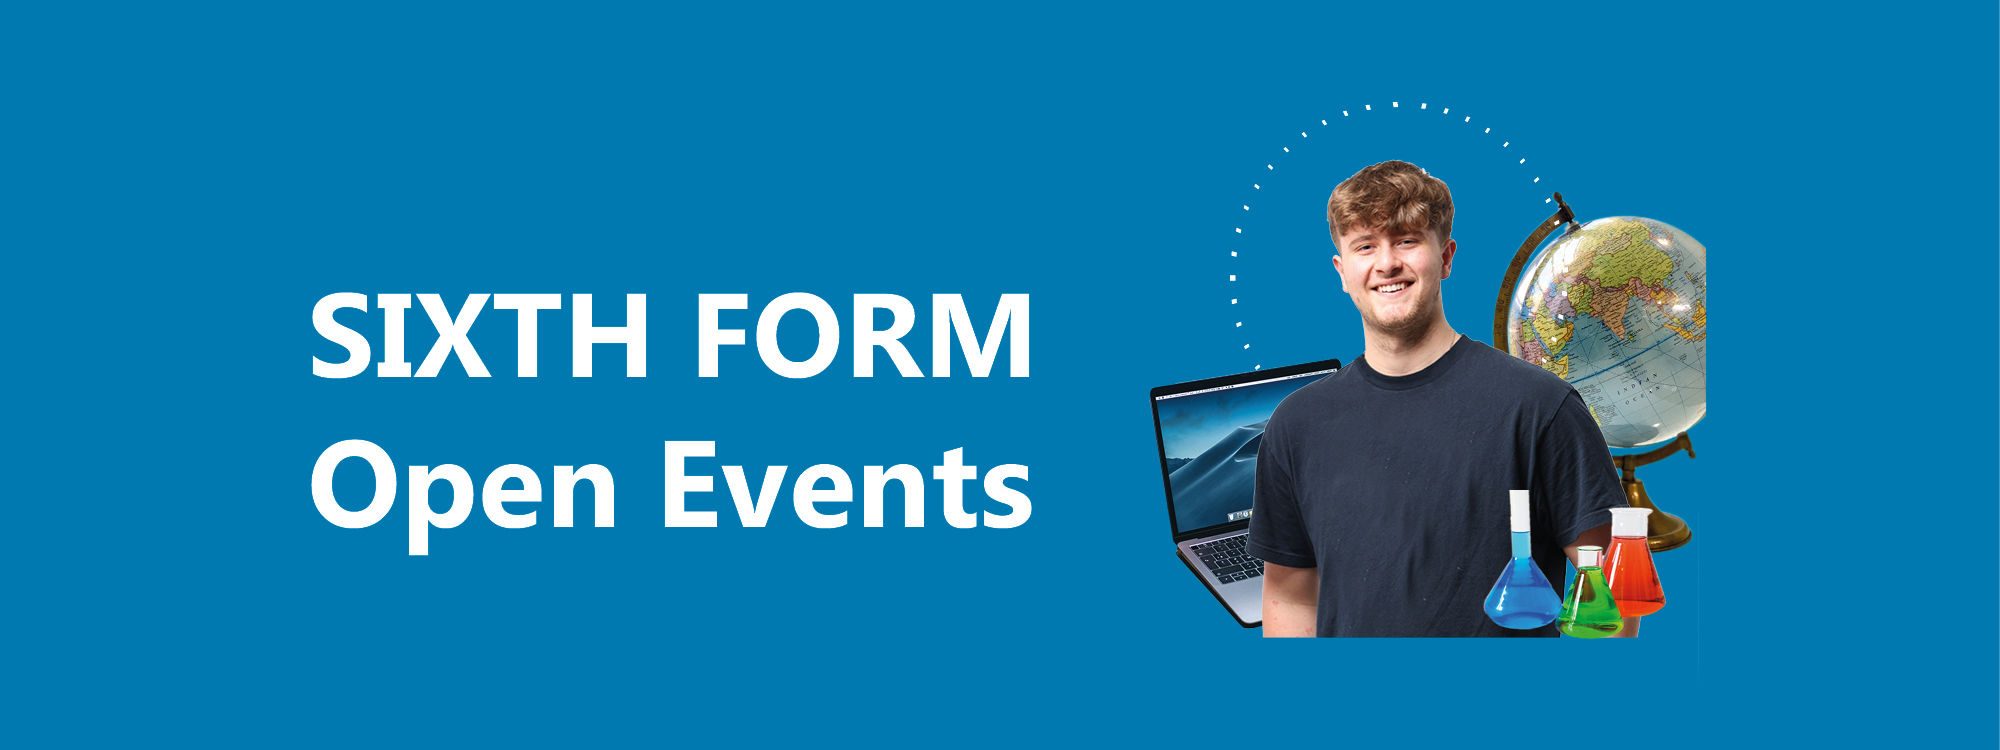 Sixth Form Choices Banner